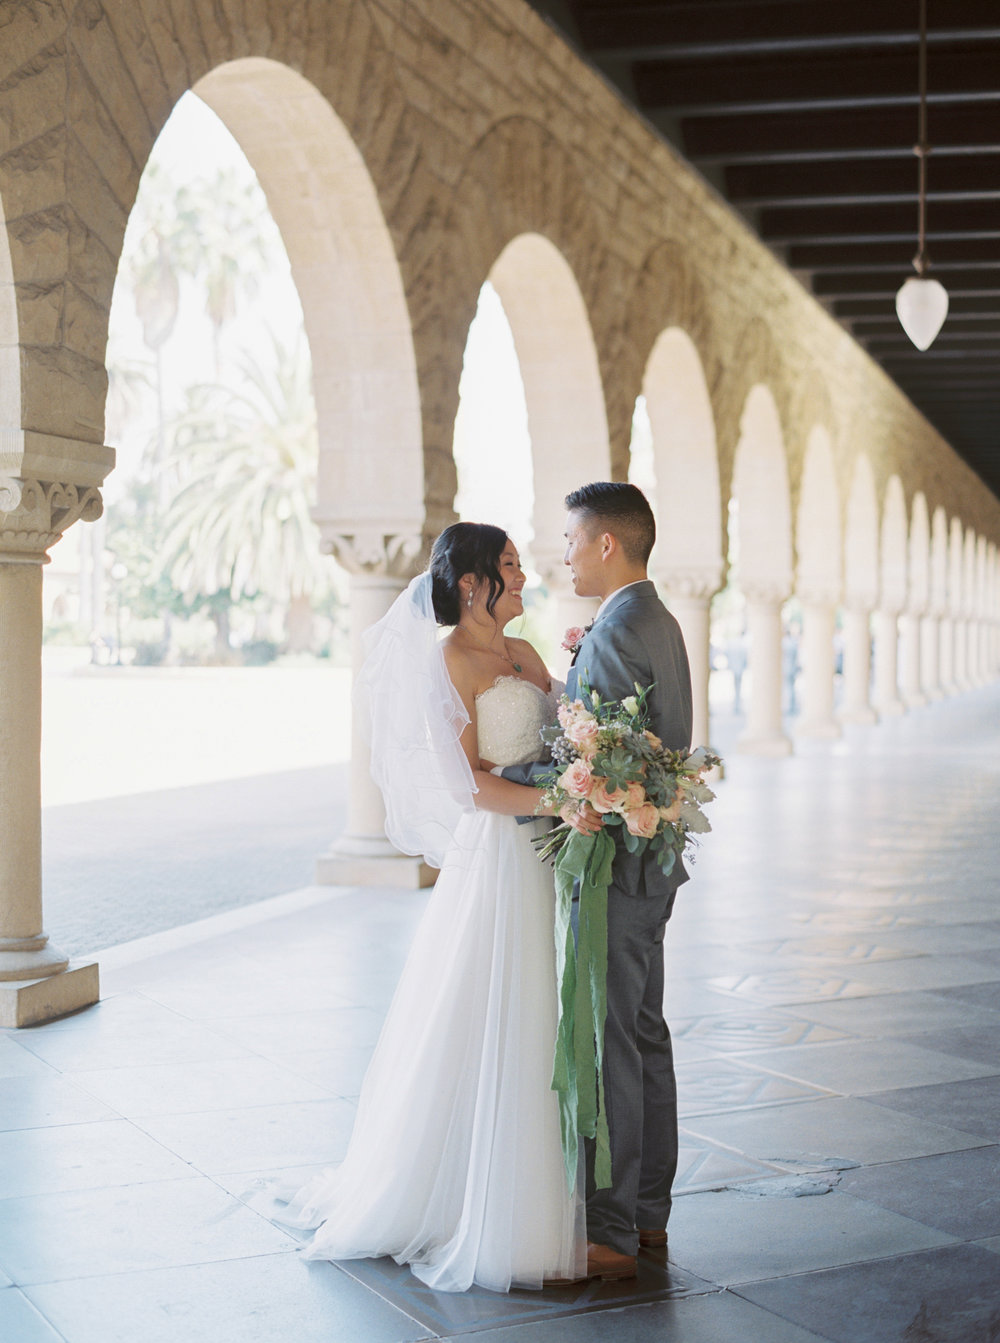 trynhphoto_wedding_photography_Standford_PaloAlto_SF_BayArea_Destination_OC_HA-34.jpg